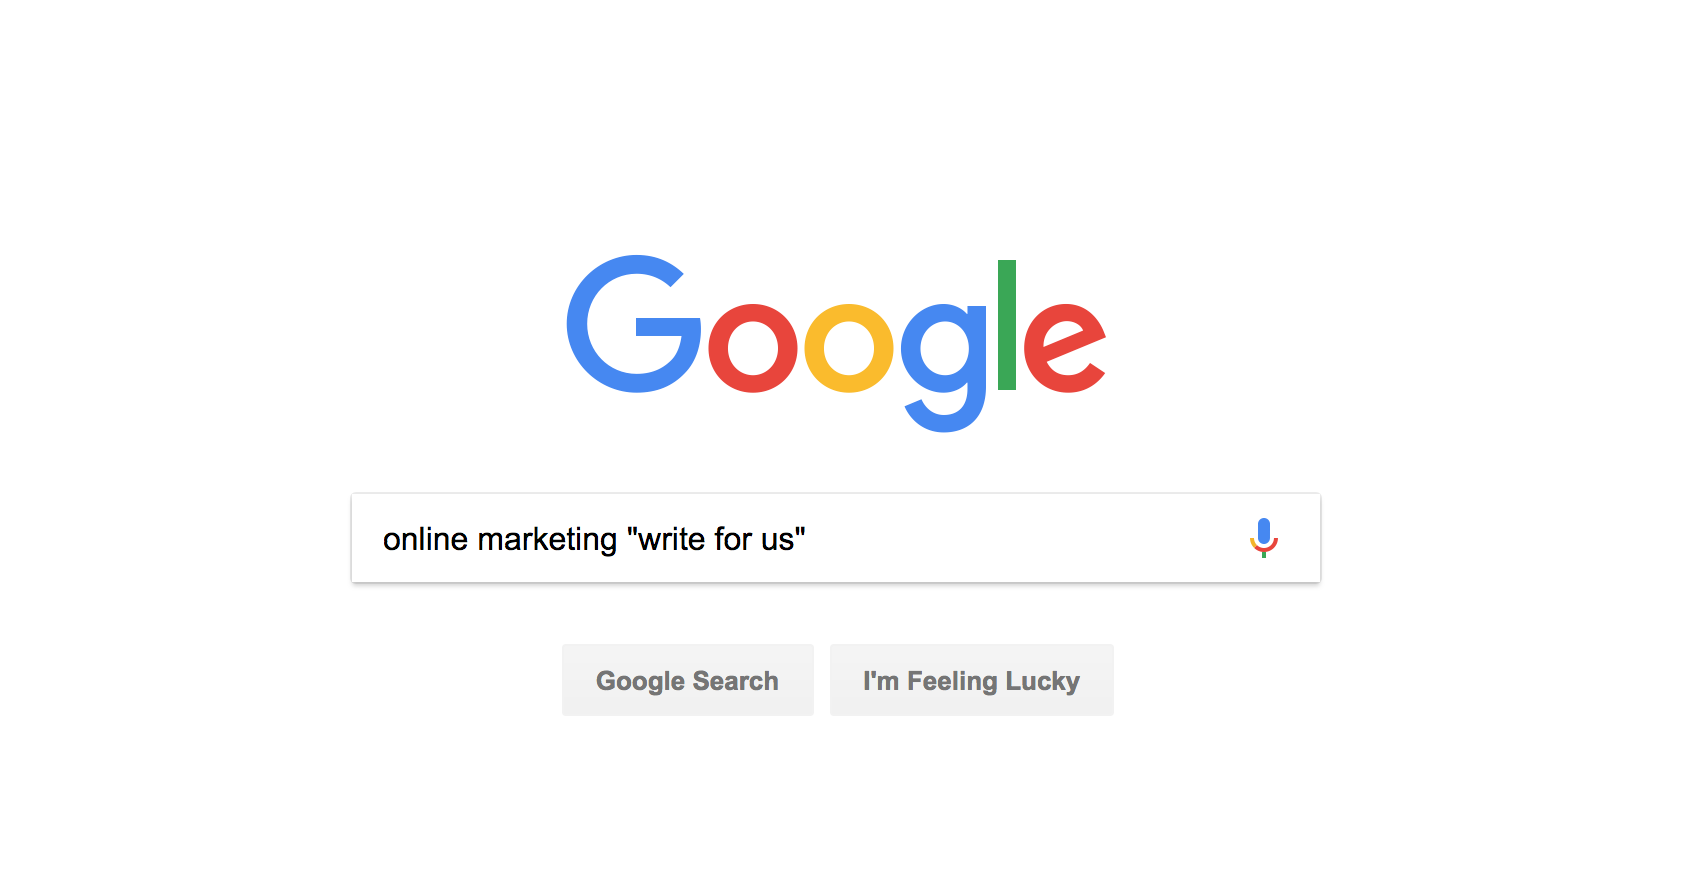 HOW TO CREATE A SIMPLE ACTIONABLE PLAN FOR YOUR ONLINE PRESENCE